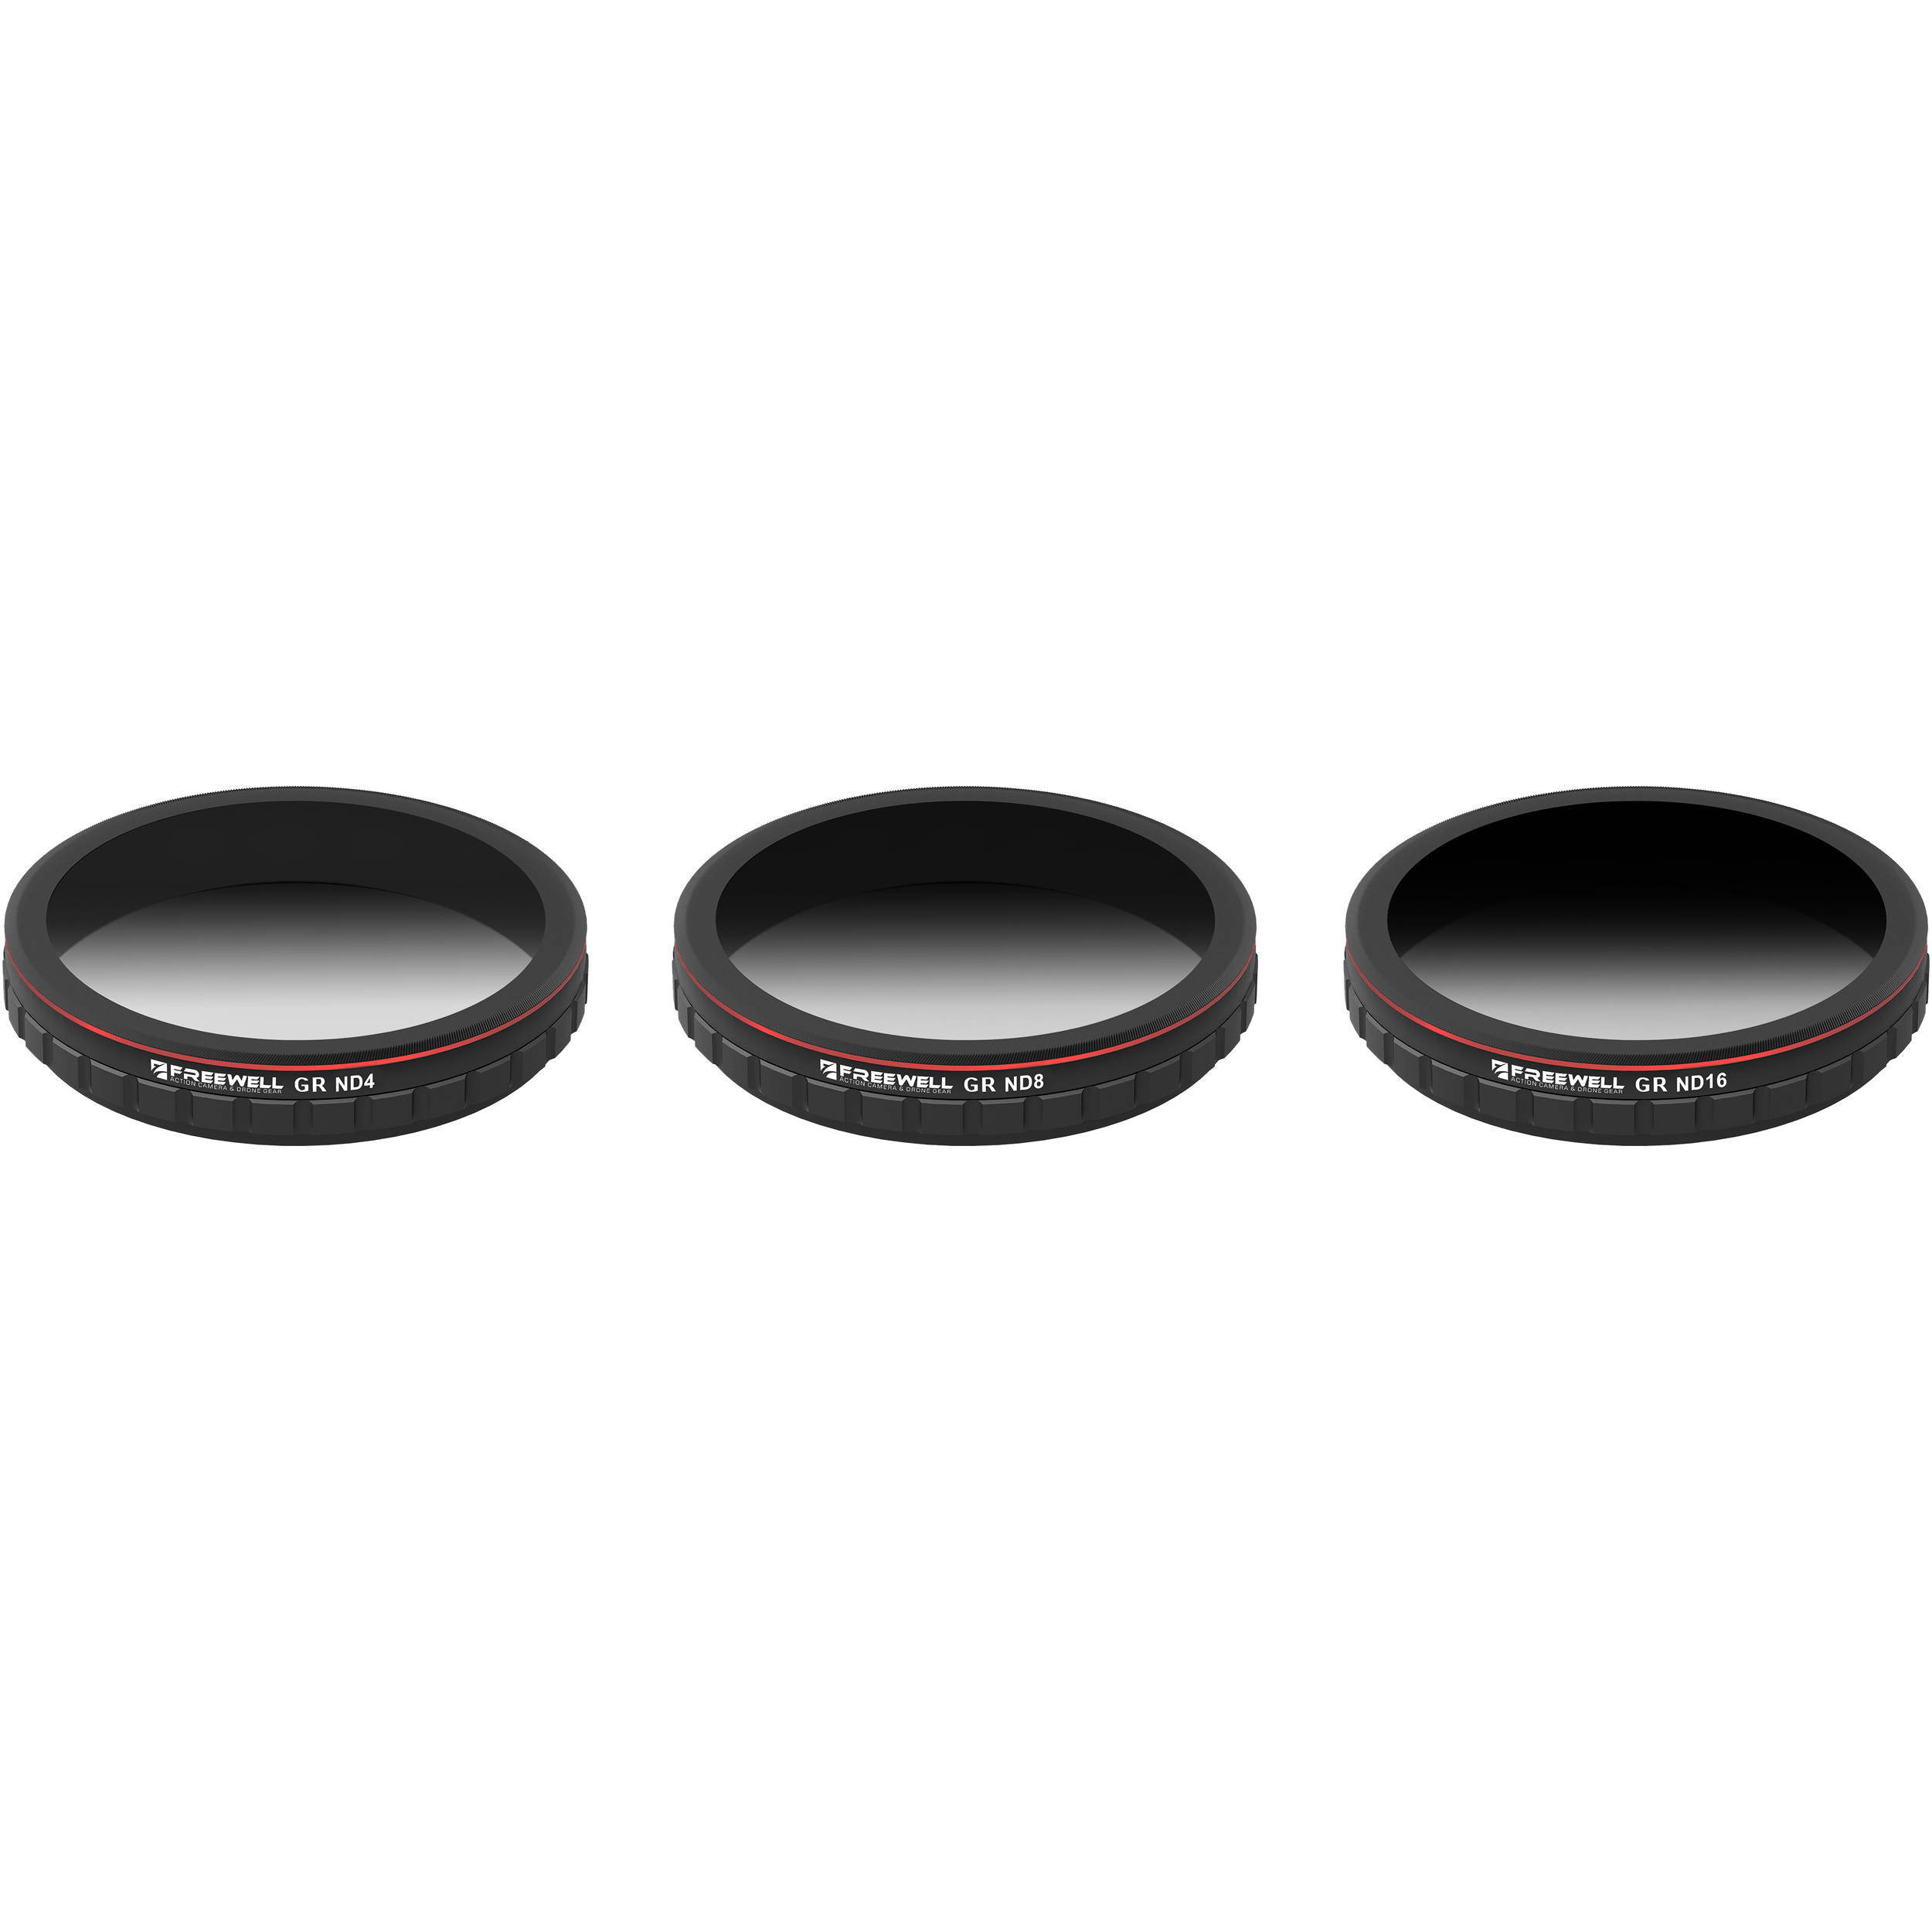 Freewell Graduated Neutral Density Filters Fw X4s Grad Bh Photo Dji Zenmuse For Nd4 Nd8 Nd16